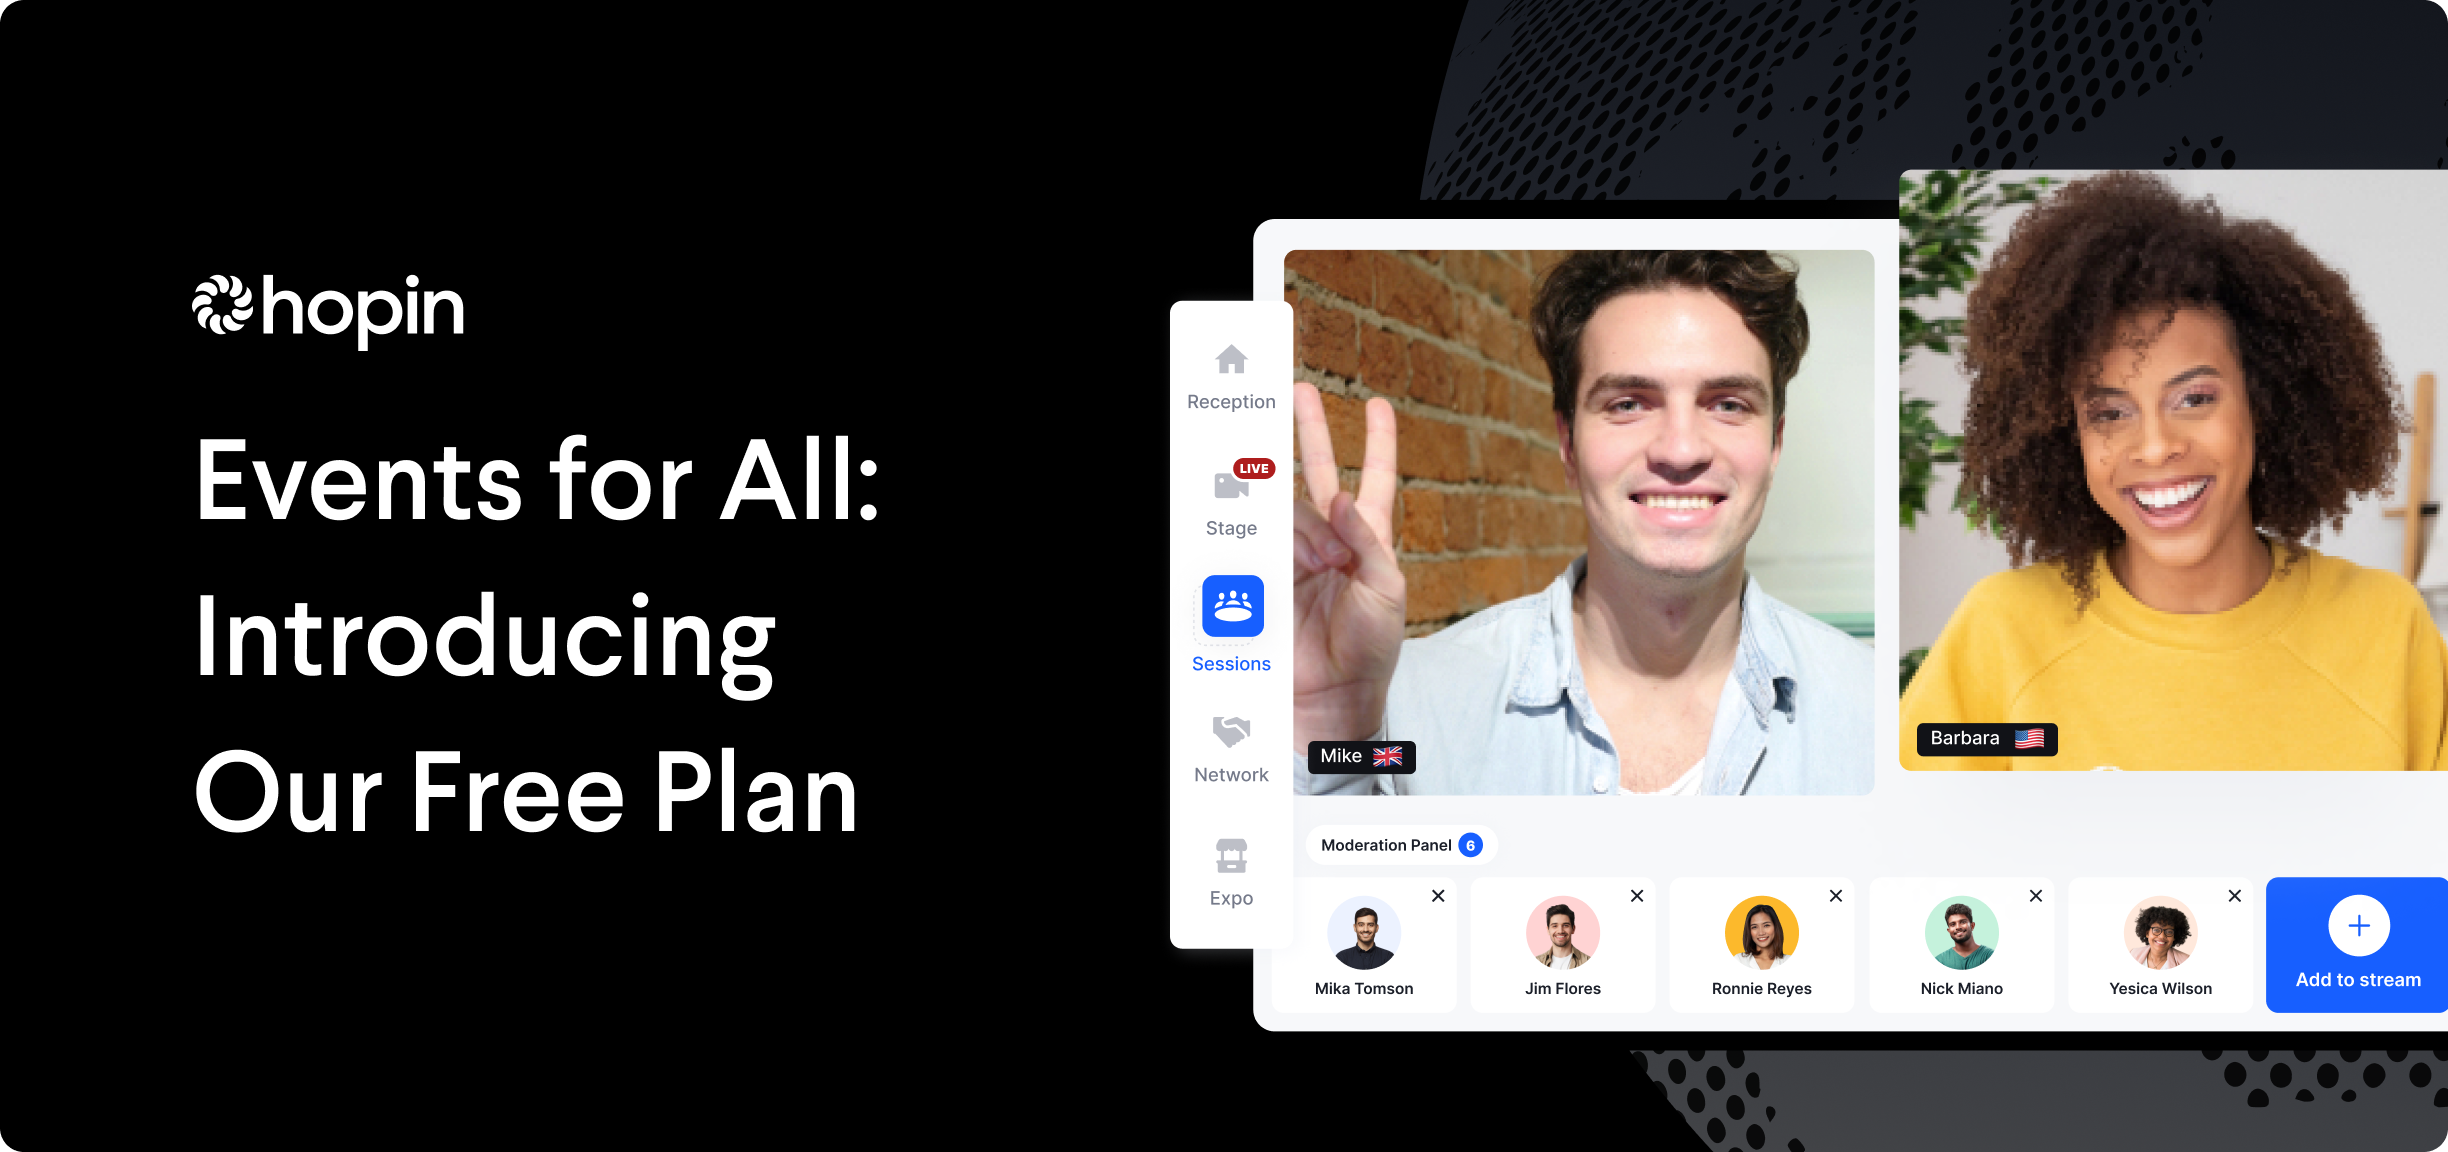 The brand-new Free plan lets everyone create immersive, interactive events for up to 100 attendees. Ideal for webinars, internal meetings, personal events, and beyond.